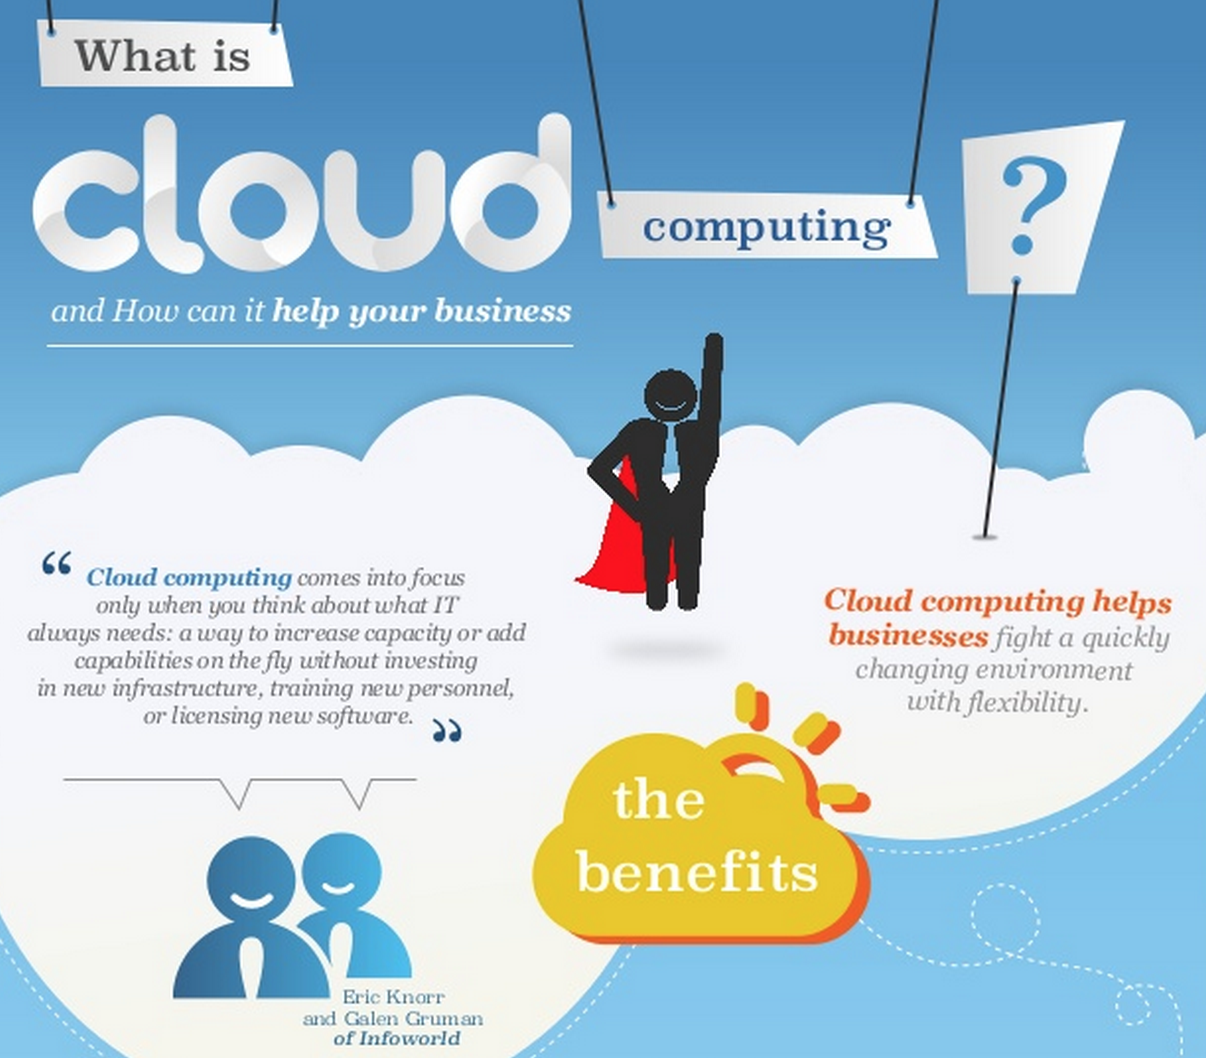 [Infographic] 12 Reasons Why Your Business Should Move to Cloud Computing